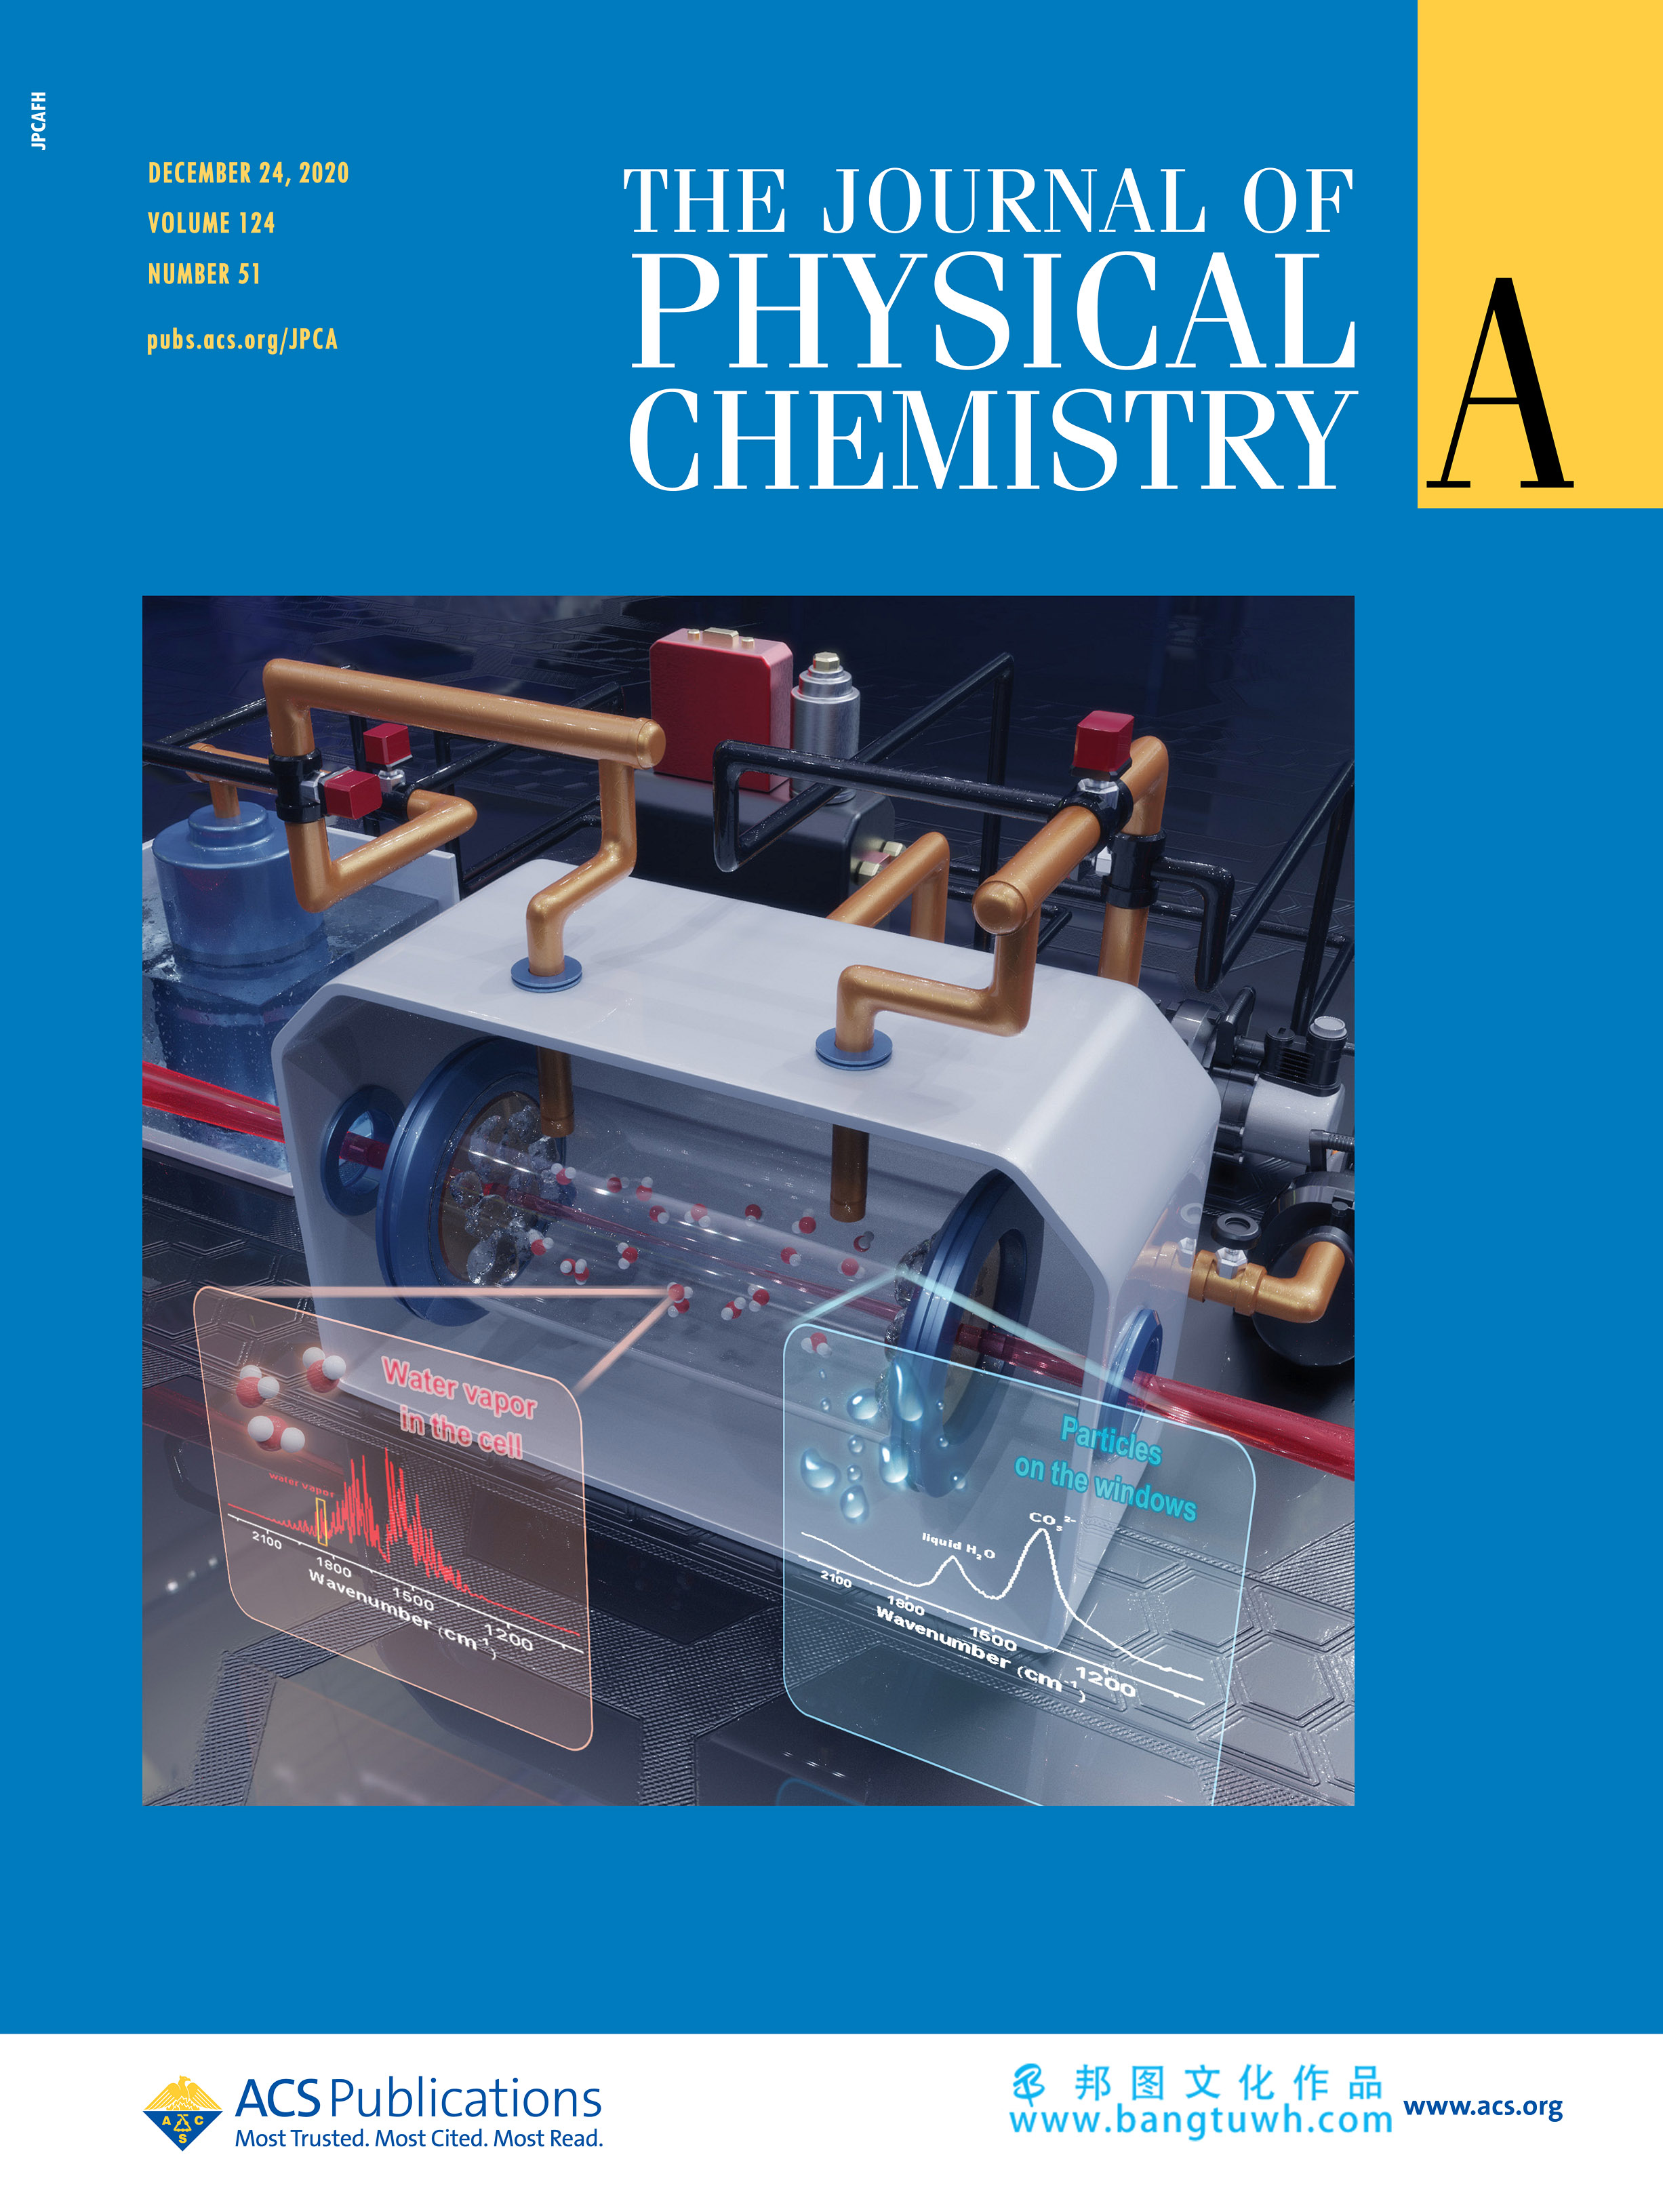 The Journal of Physical Chemistry A 北京理工